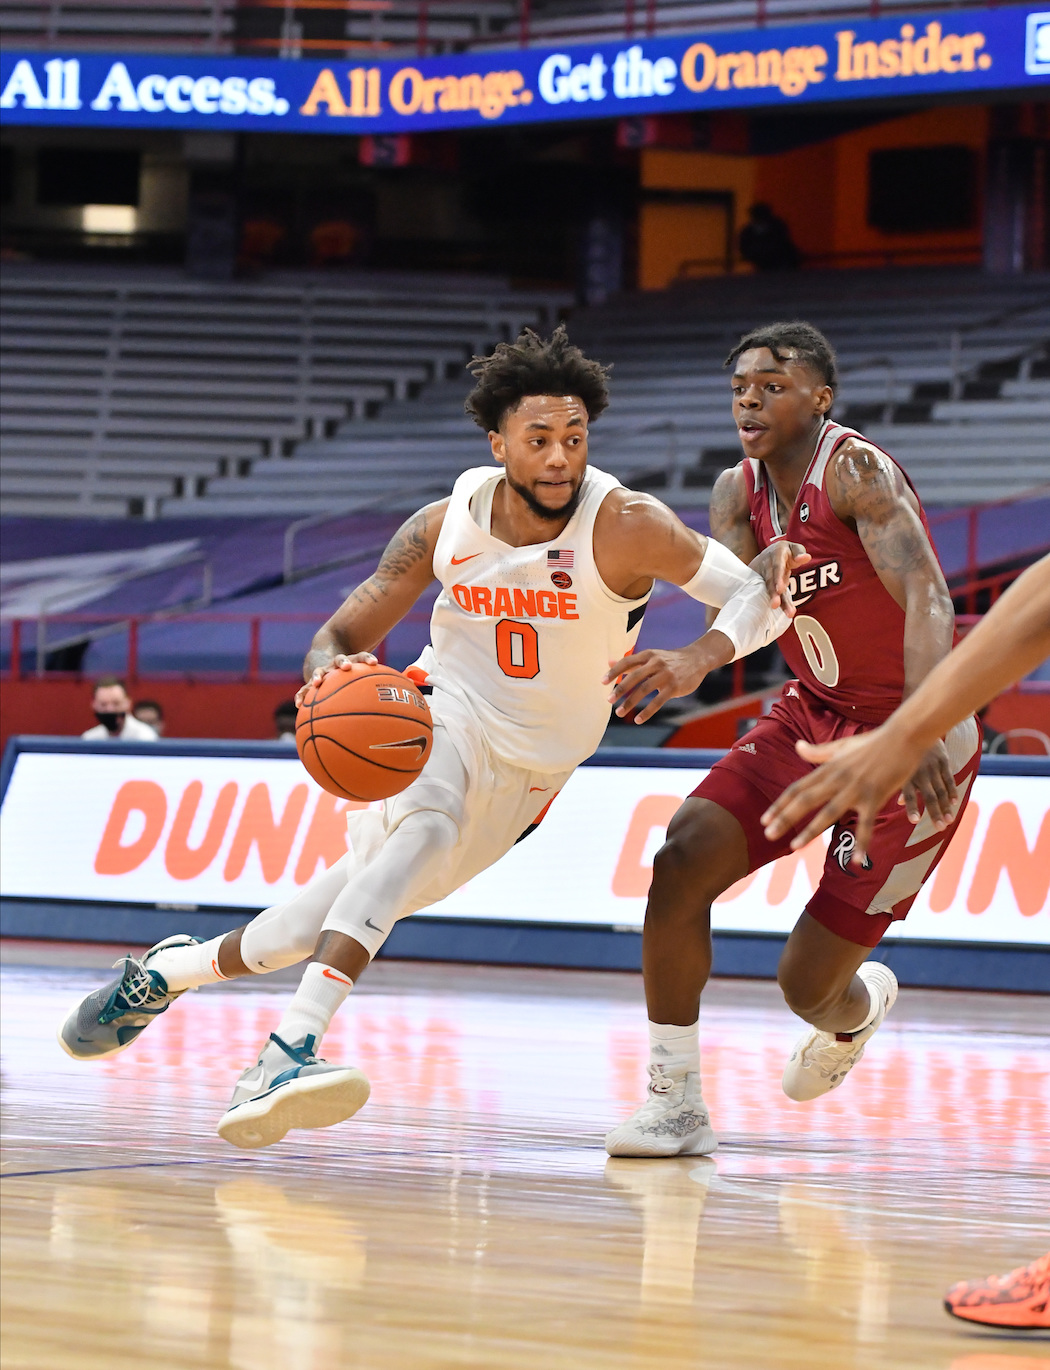 Dec 5, 2020; Syracuse, New York, USA; Syracuse Orange forward Alan Griffin (left) drives to the basket as Rider Broncs guard Christian Ings (right) defends in the first half at the Carrier Dome. Mandatory Credit: Mark Konezny-USA TODAY Sports